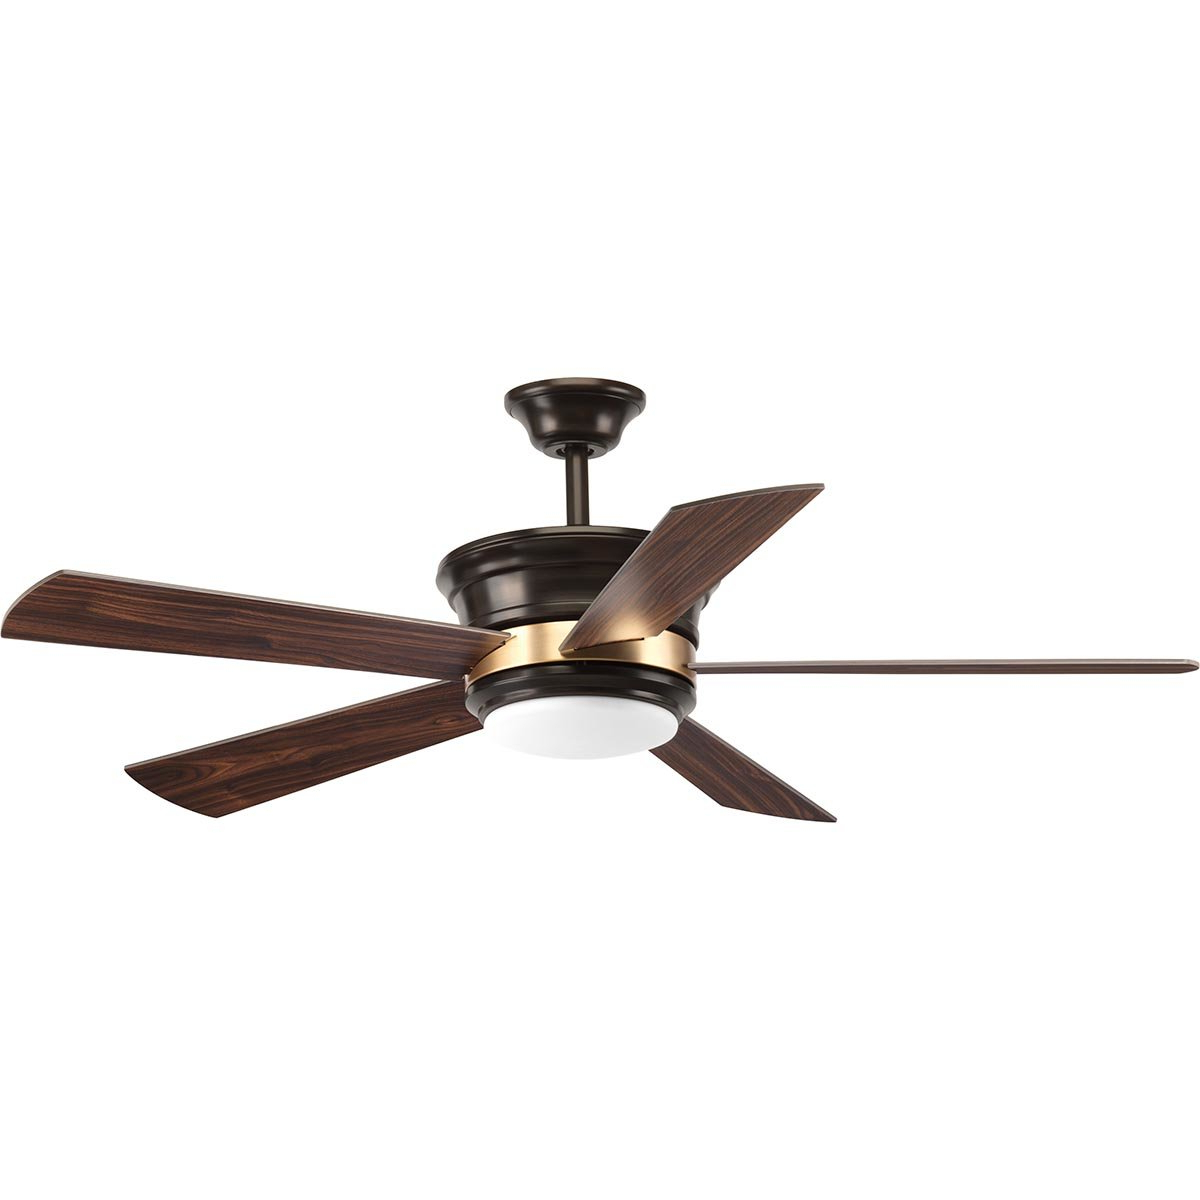 "54"" Seaton 5 Blade Led Ceiling Fan With Remote For Newest Wilburton 5 Blade Ceiling Fans With Remote (View 4 of 20)"